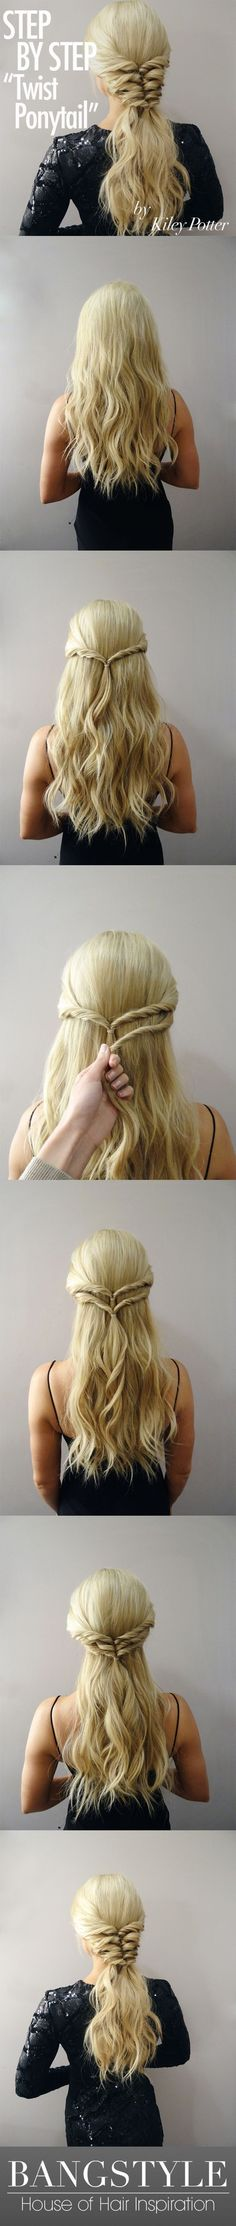 20 Gorgeous Braided Hairstyles For Long Hair - Page 6 of 9 - Trend To Wear